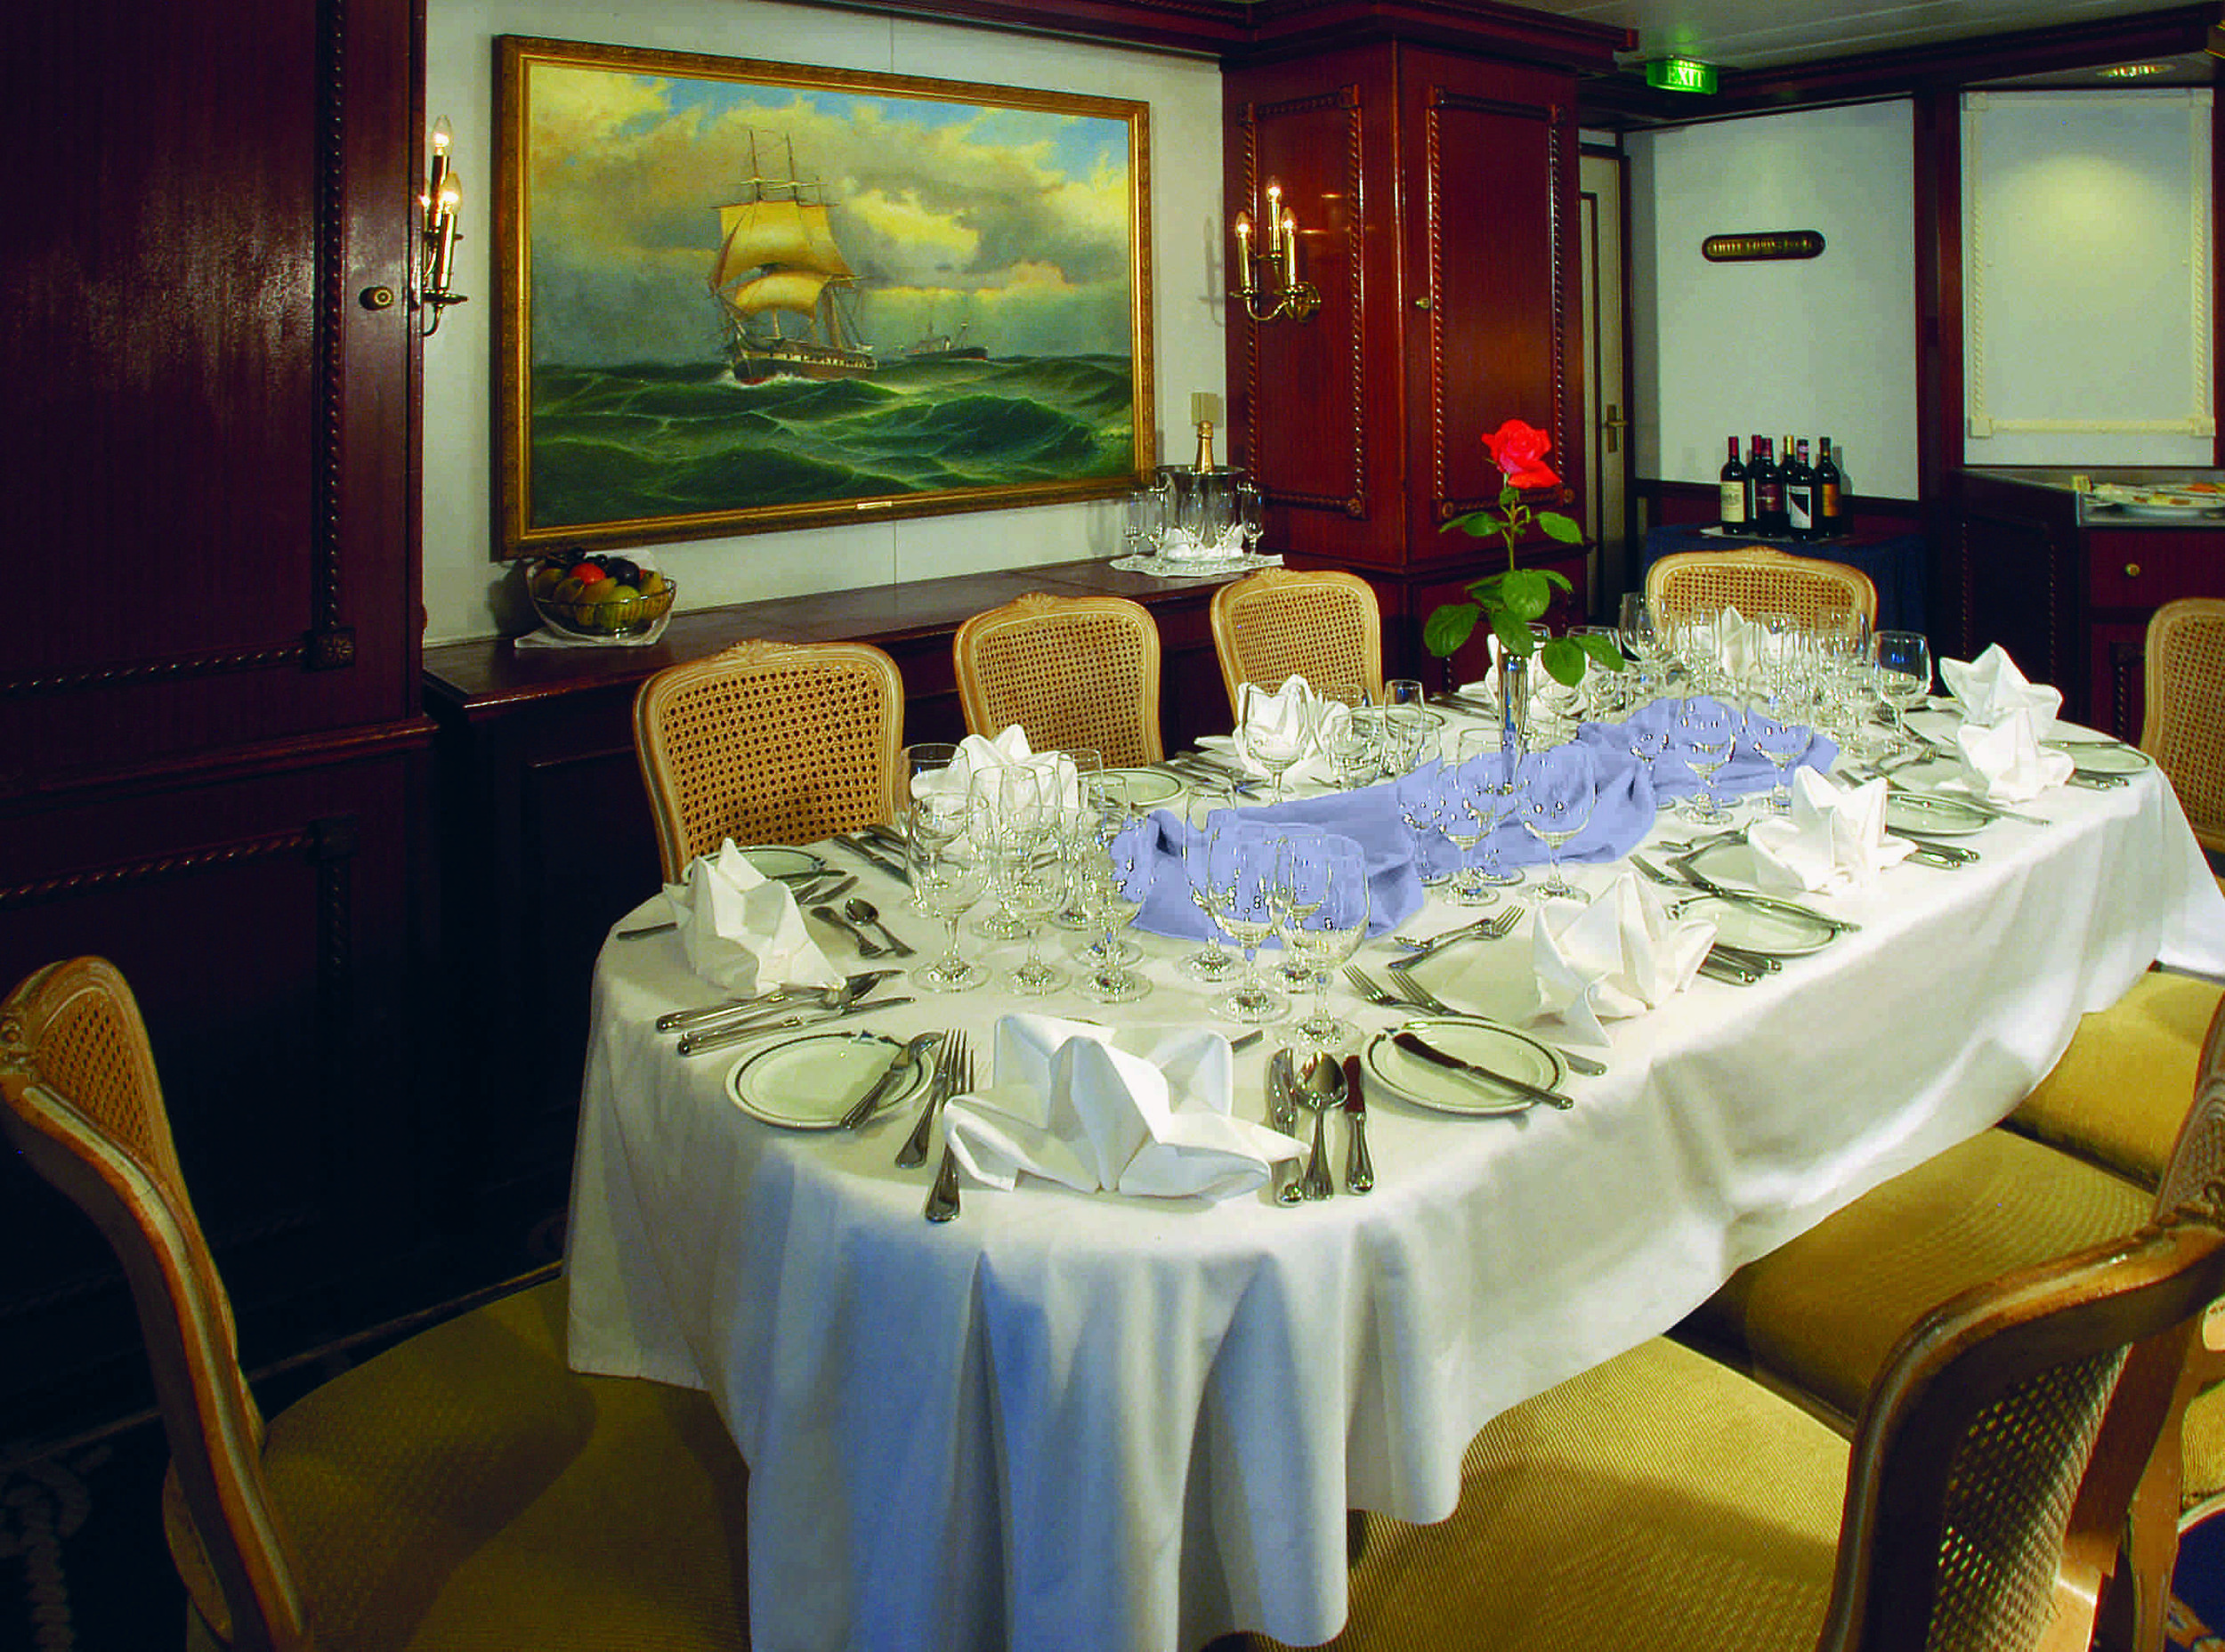 Dining_Capt_Table_Clipper small.jpg